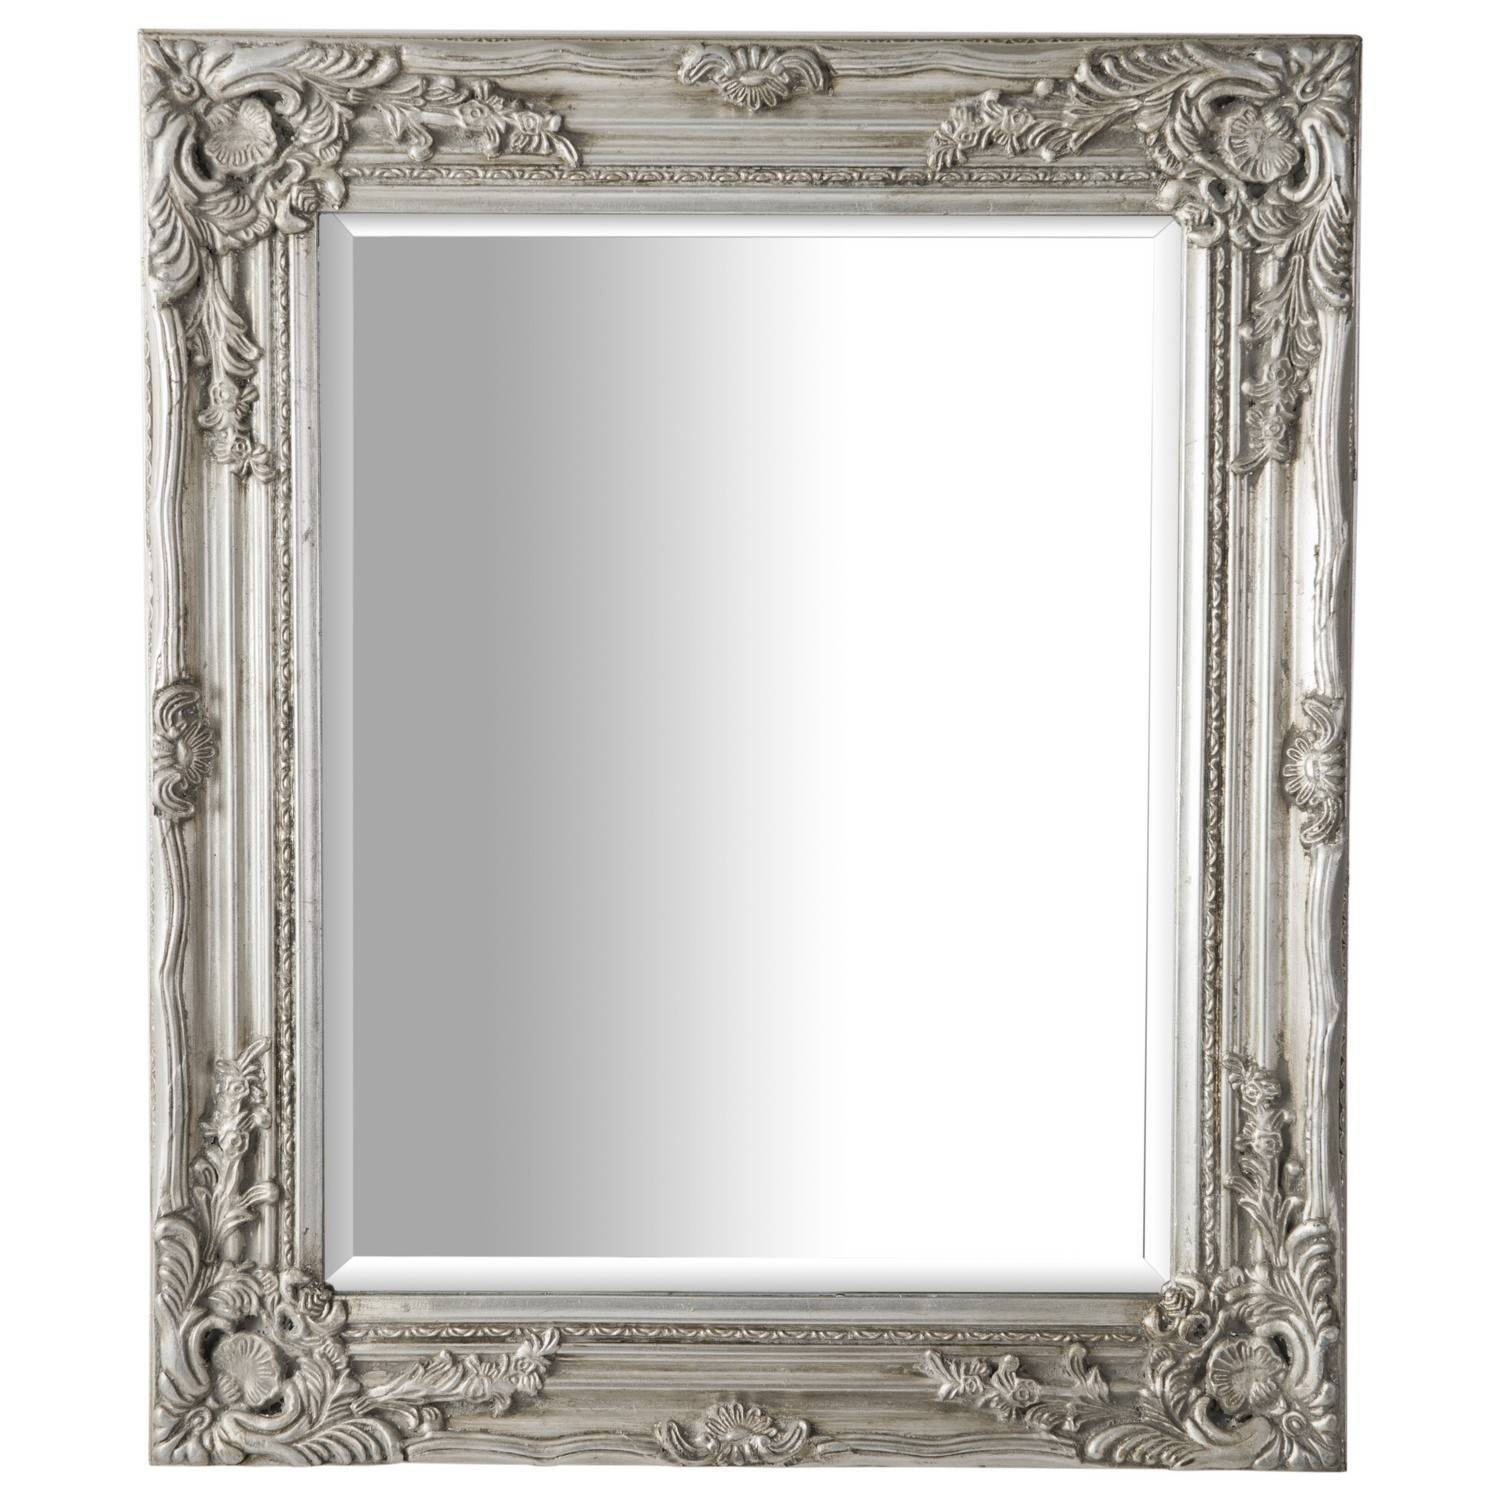 Antique Ornate Mirror Silver regarding Antique Ornate Mirrors (Image 5 of 25)